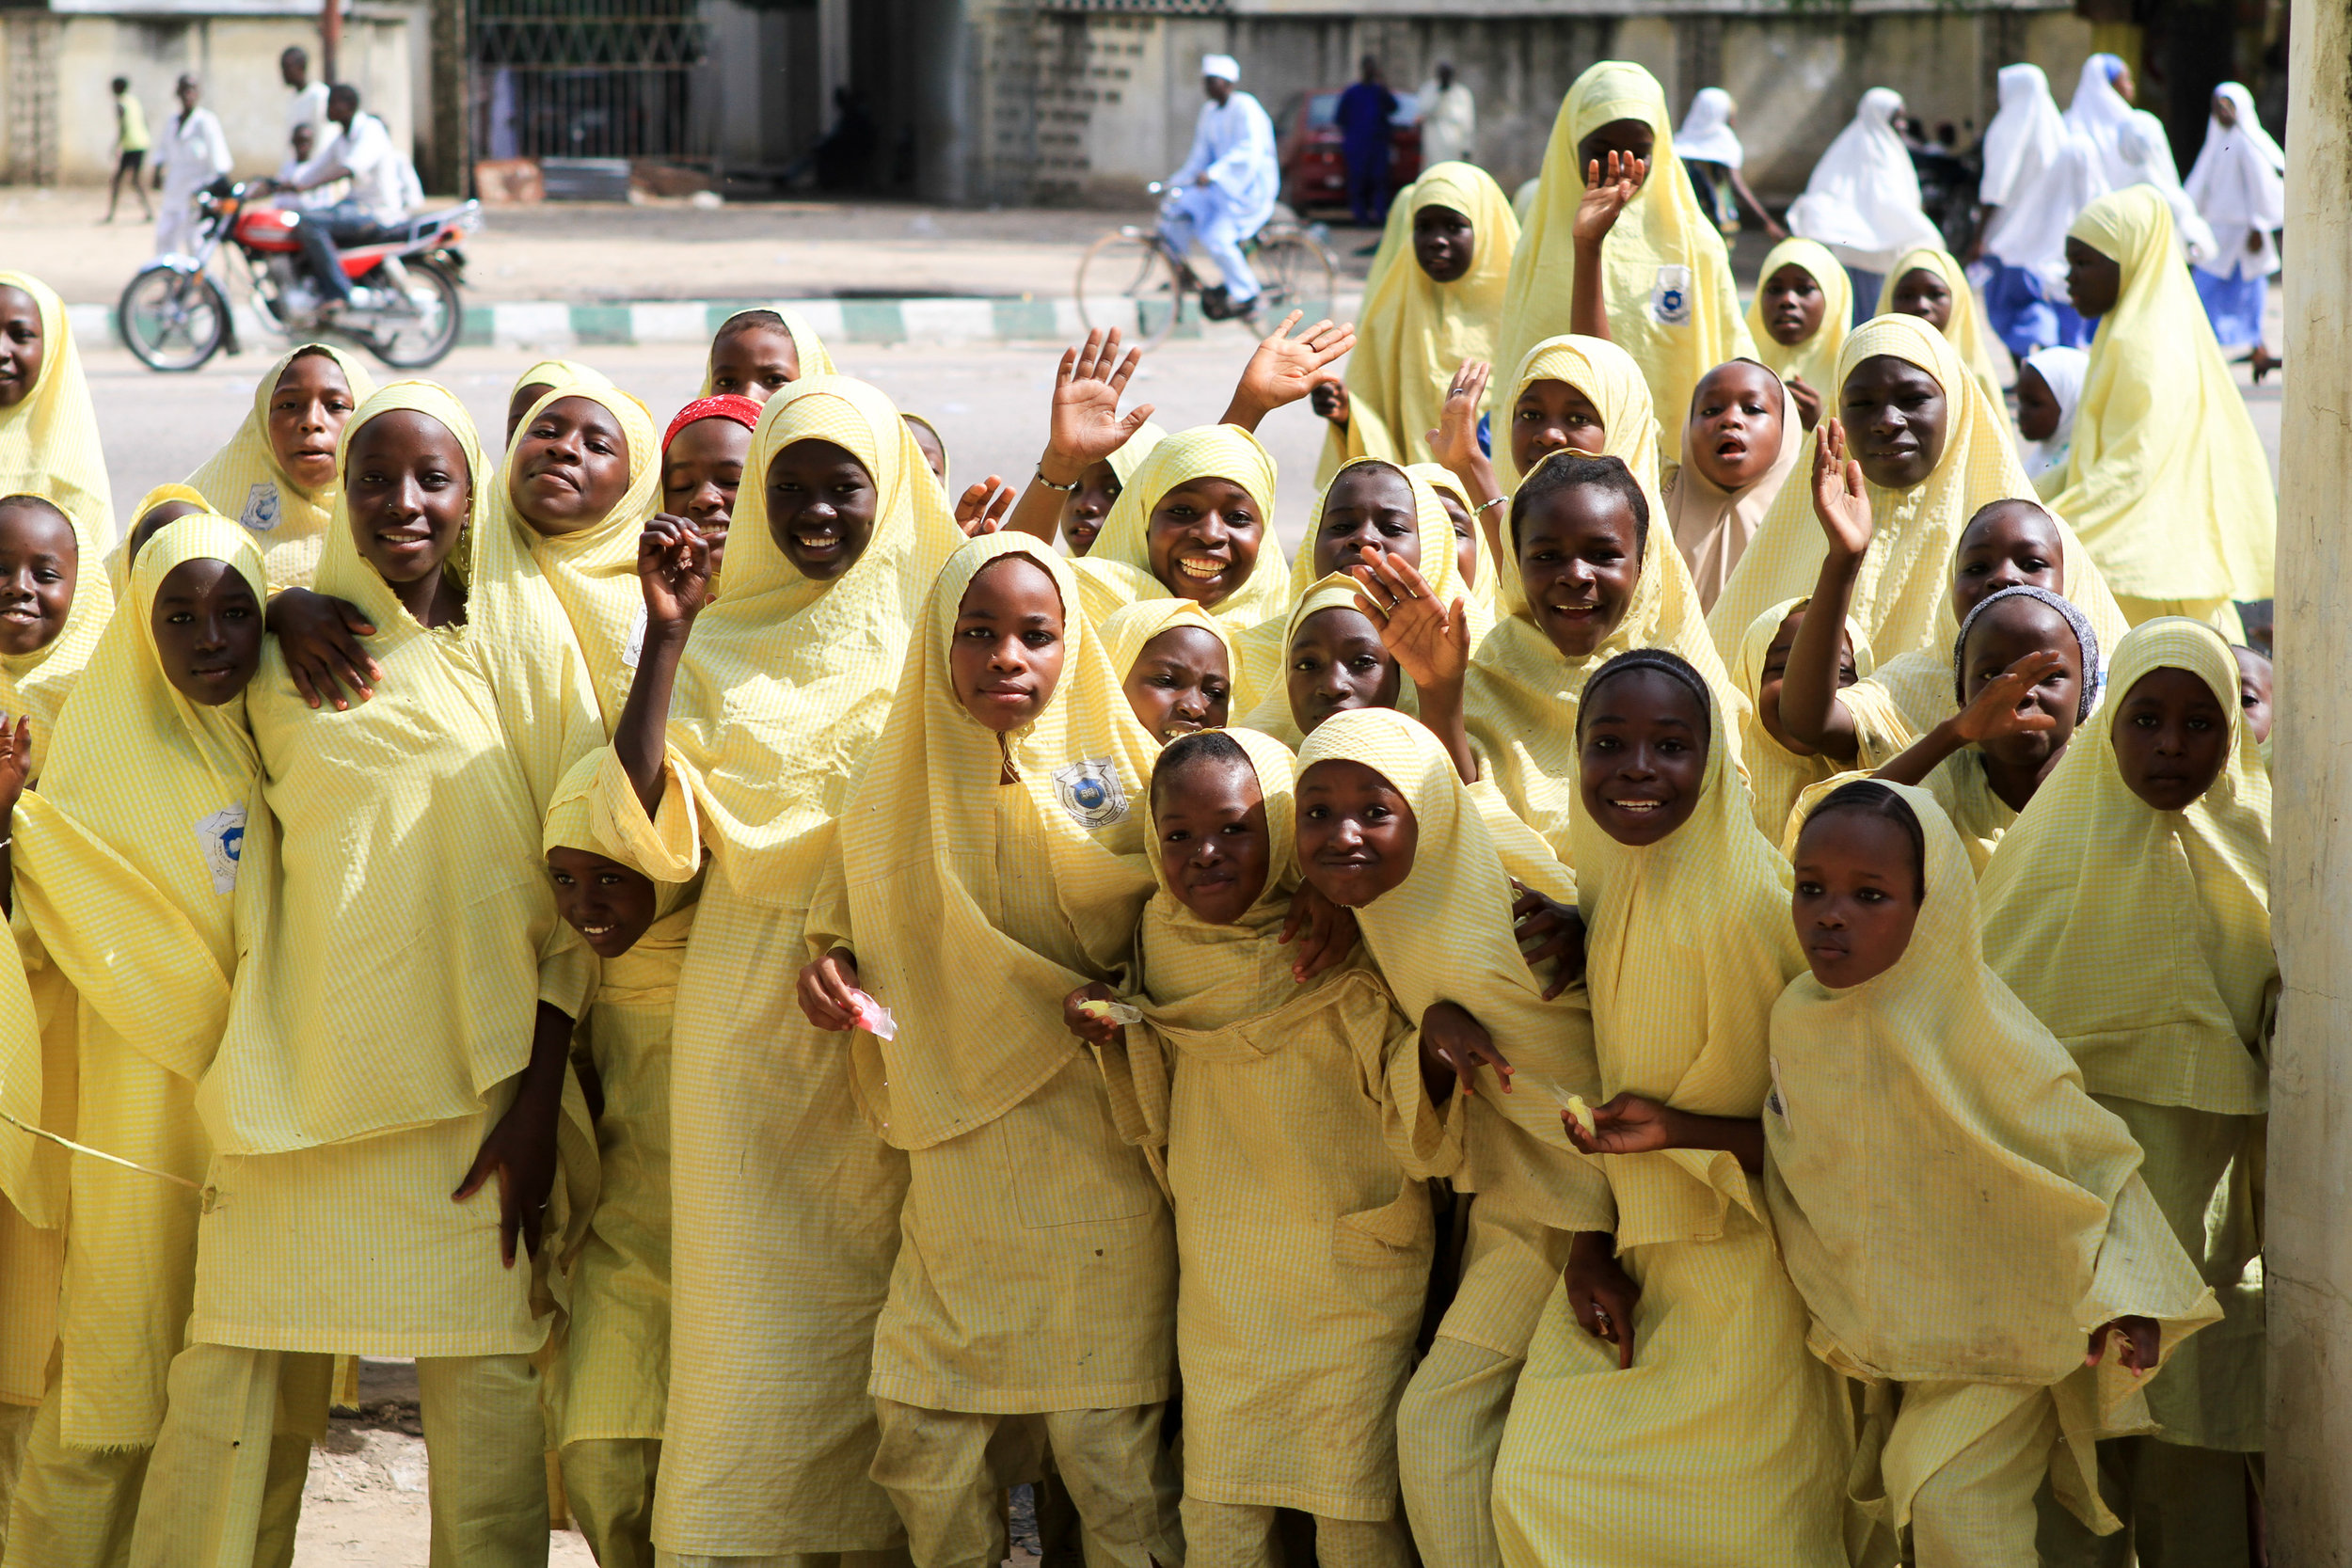 School girls in Maiduguri crowd around the gate to say hello - at that time, they probably didn't see many foreigners.